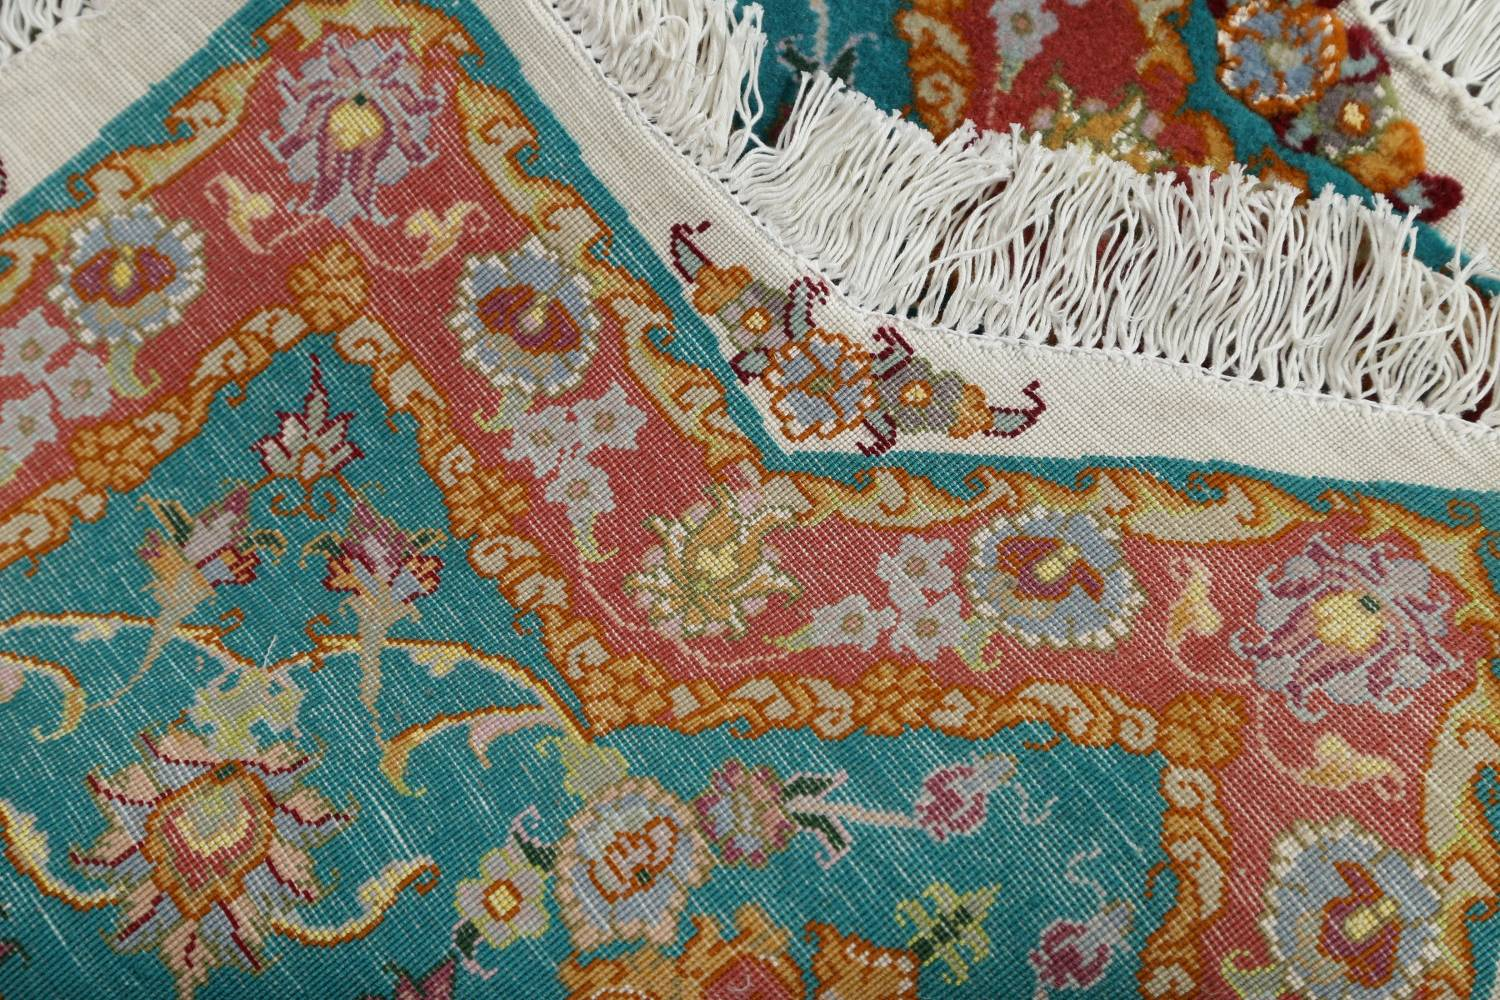 Floral Teal Tabriz Persian Hand-Knotted 3x3 Wool Silk Star Rug image 11